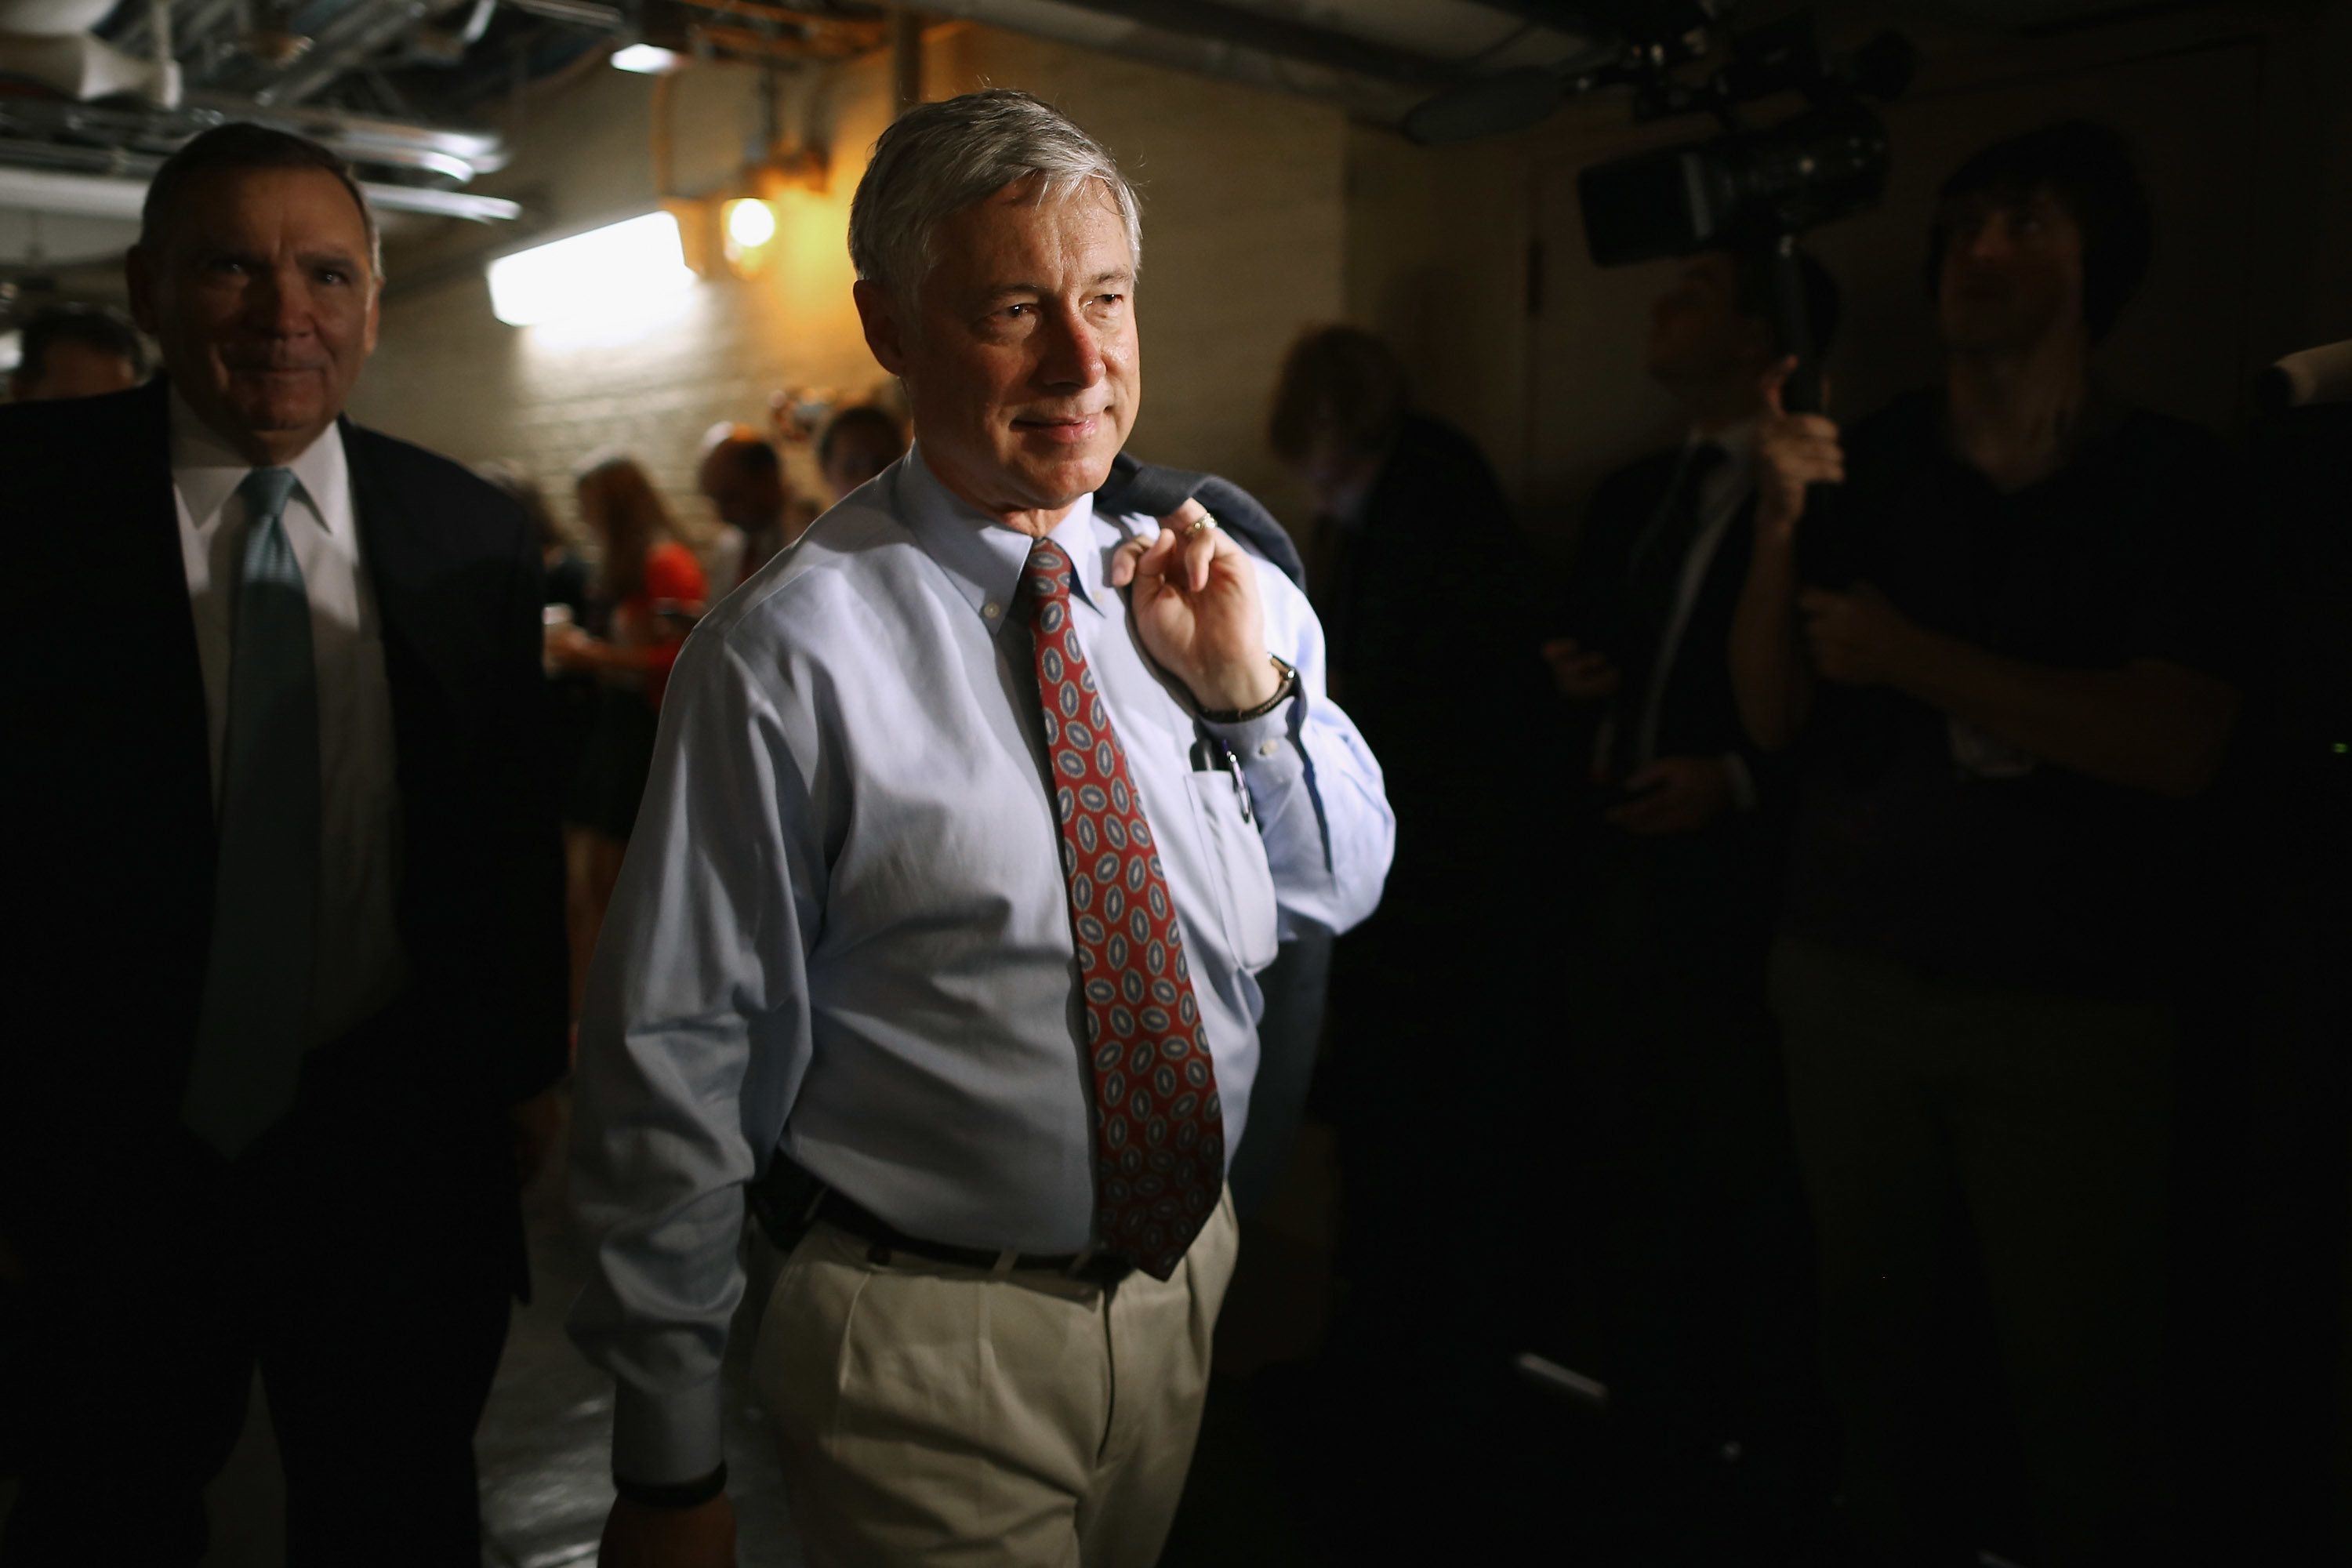 WASHINGTON, DC - OCTOBER 09:  House Energy and Commerce Committee Chairman Fred Upton (R-MI) heads for House Republican caucus meeting in the basement of the U.S. Capitol October 9, 2015 in Washington, DC. Speaker of the House John Boehner's (R-OH) plans to retire at the end of October have been thrown into question after Majority Leader Kevin McCarthy (R-CA) announced Thursday he was pulling out of the race for Speaker.  (Photo by Chip Somodevilla/Getty Images)